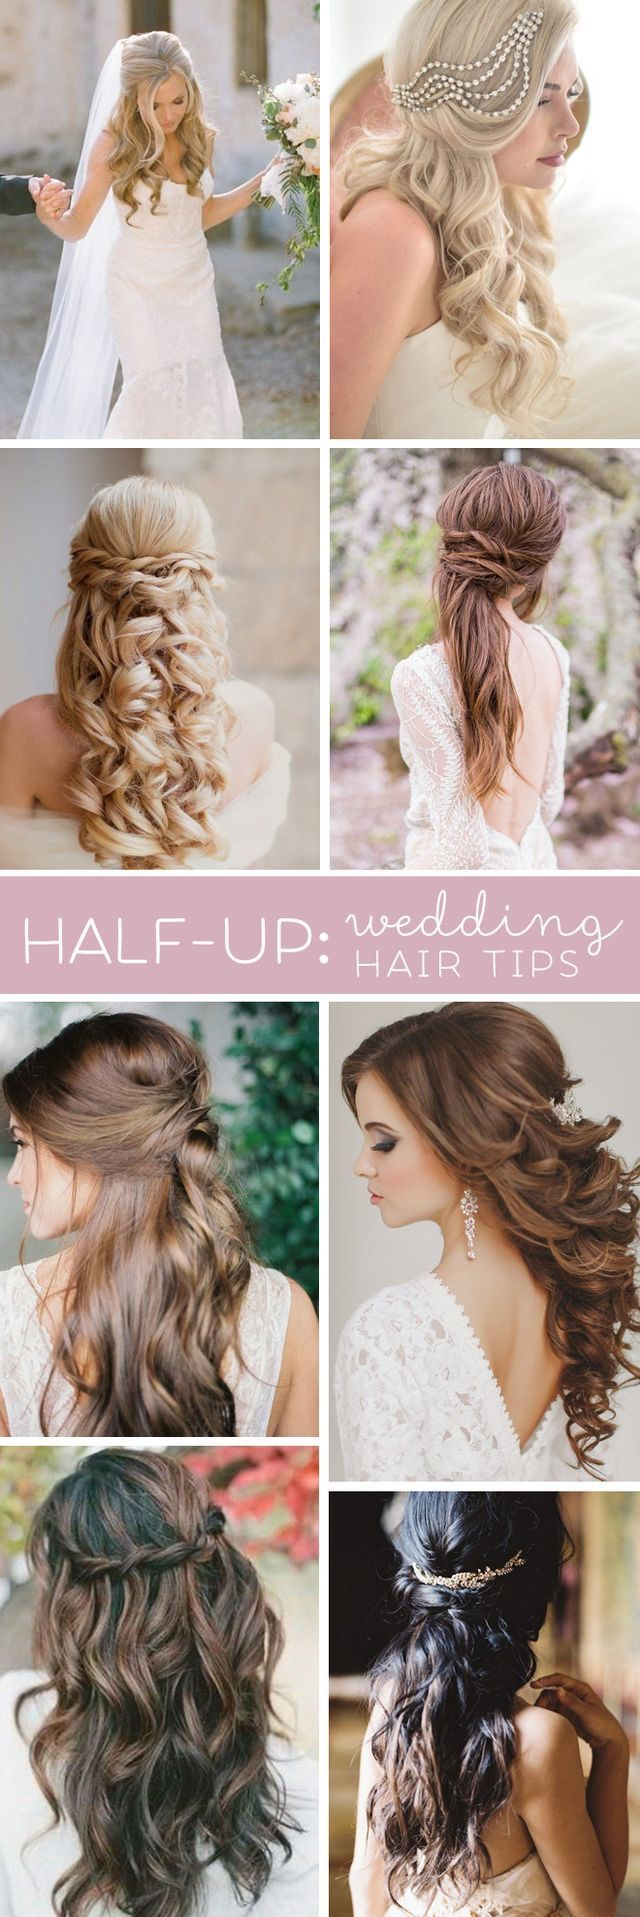 Pin by shir oh on beauty pinterest hair style wedding and weddings